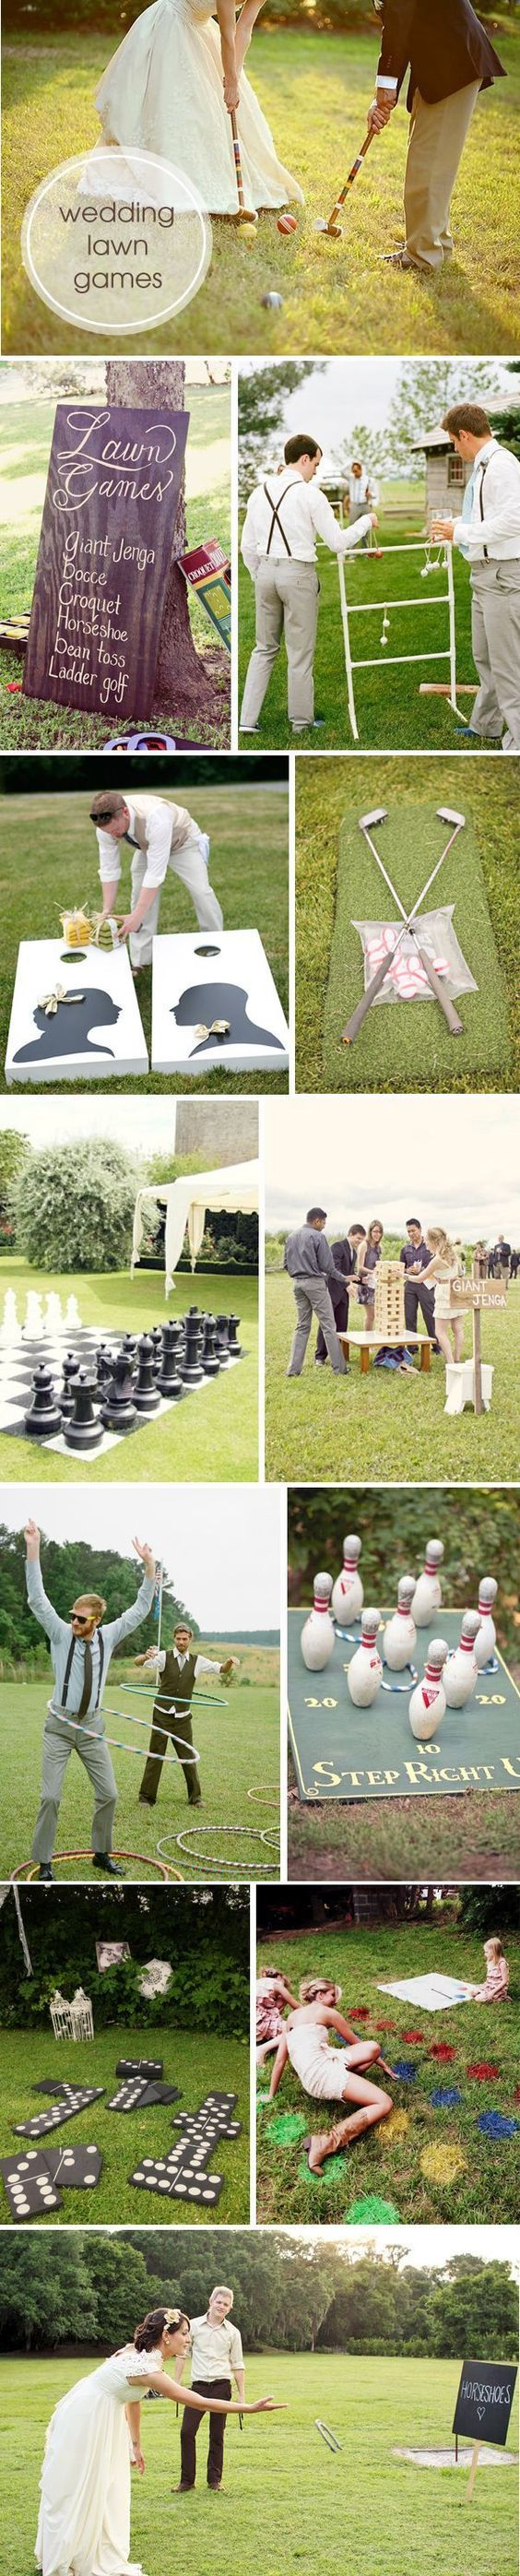 Don't have a typical wedding. Plan fun games for the whole party to enjoy! #DIYWedding